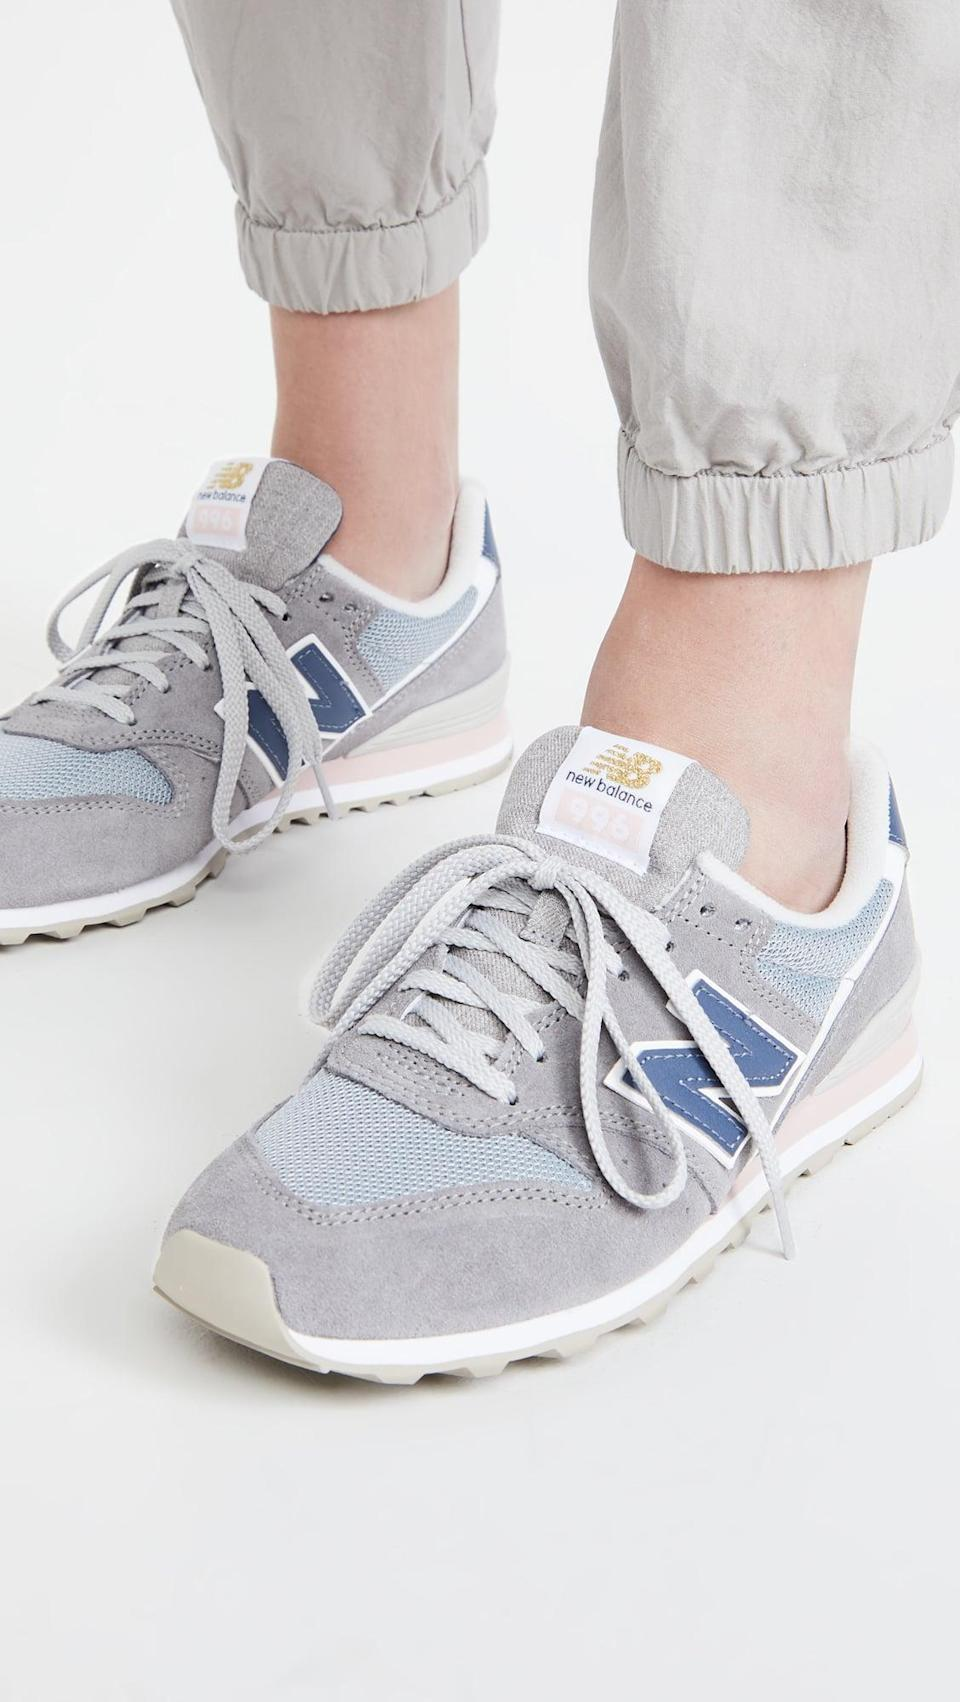 <p>These <span>New Balance 996 V2 Sneakers</span> ($80) will match any outfit in your closet with its versatile blue and gray accents. They are an easy weekend choice.</p>